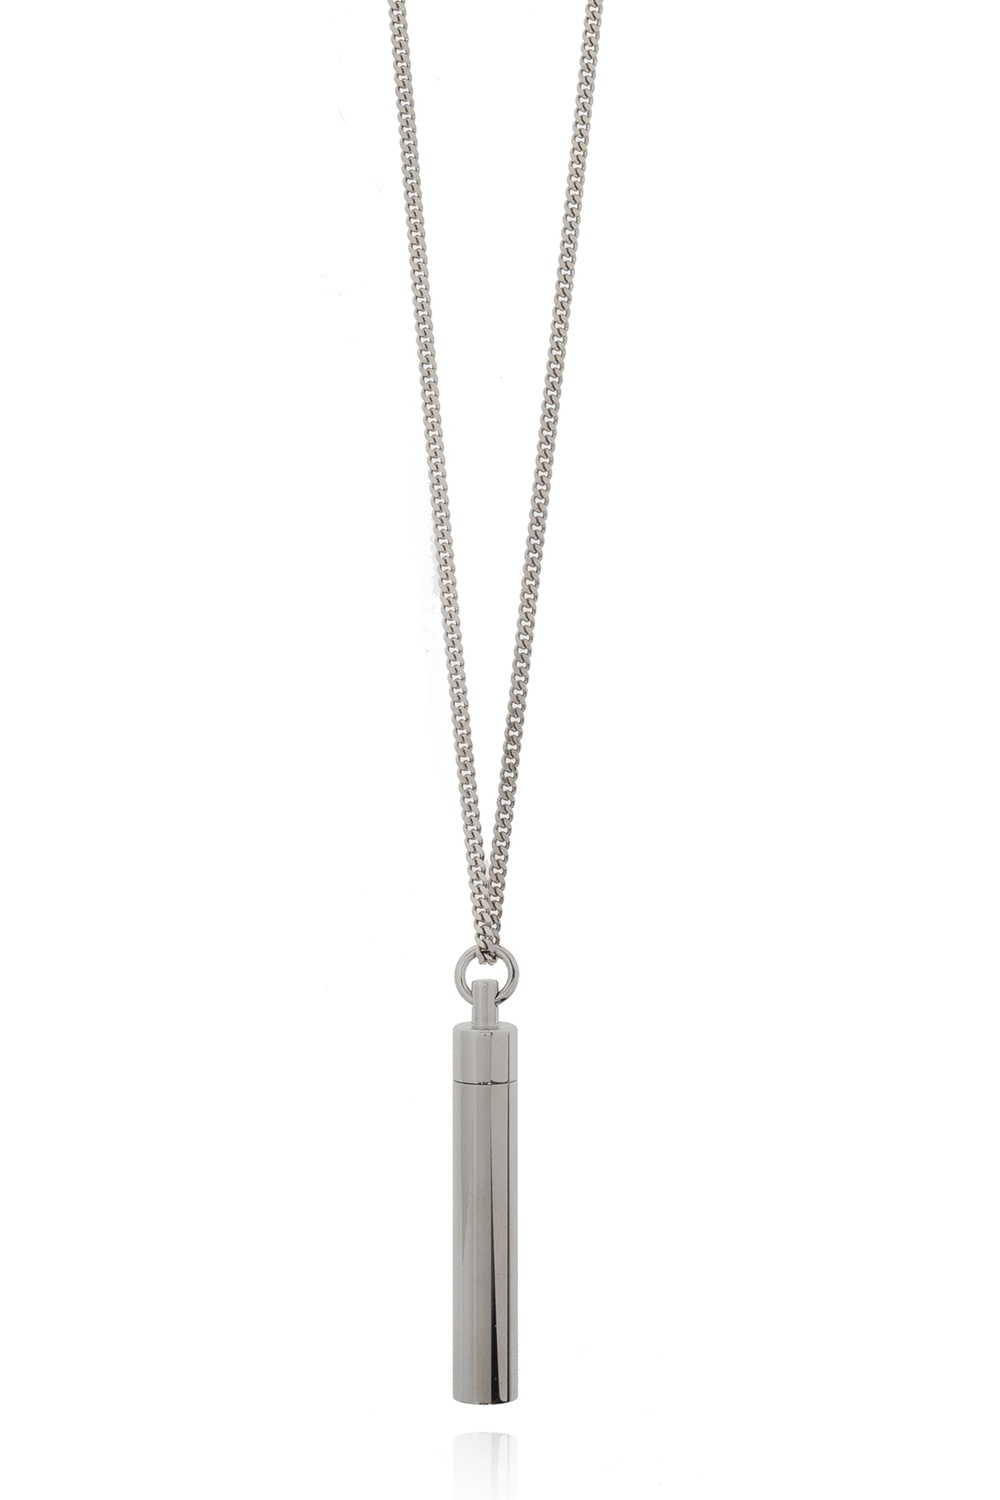 VETEMENTS 'Powder' necklace with charm